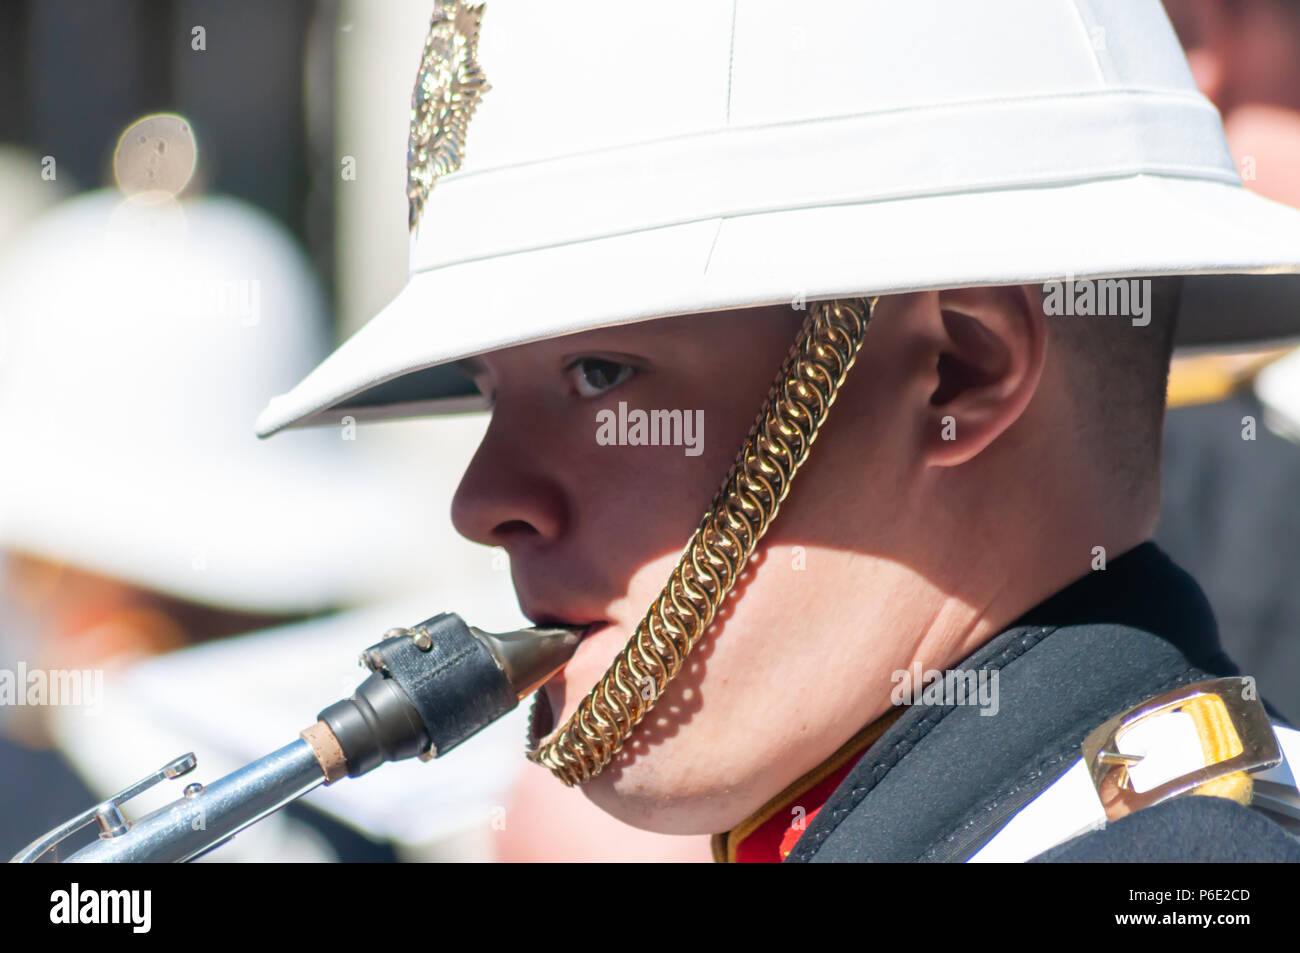 Glasgow, Scotland, UK. 30th June, 2018. Armed Forces Day. A parade through the city centre from Holland Street to George Square is led by the Royal Marine Band and includes serving military, cadets, youth organisations and veteran associations. Credit: Skully/Alamy Live News - Stock Image